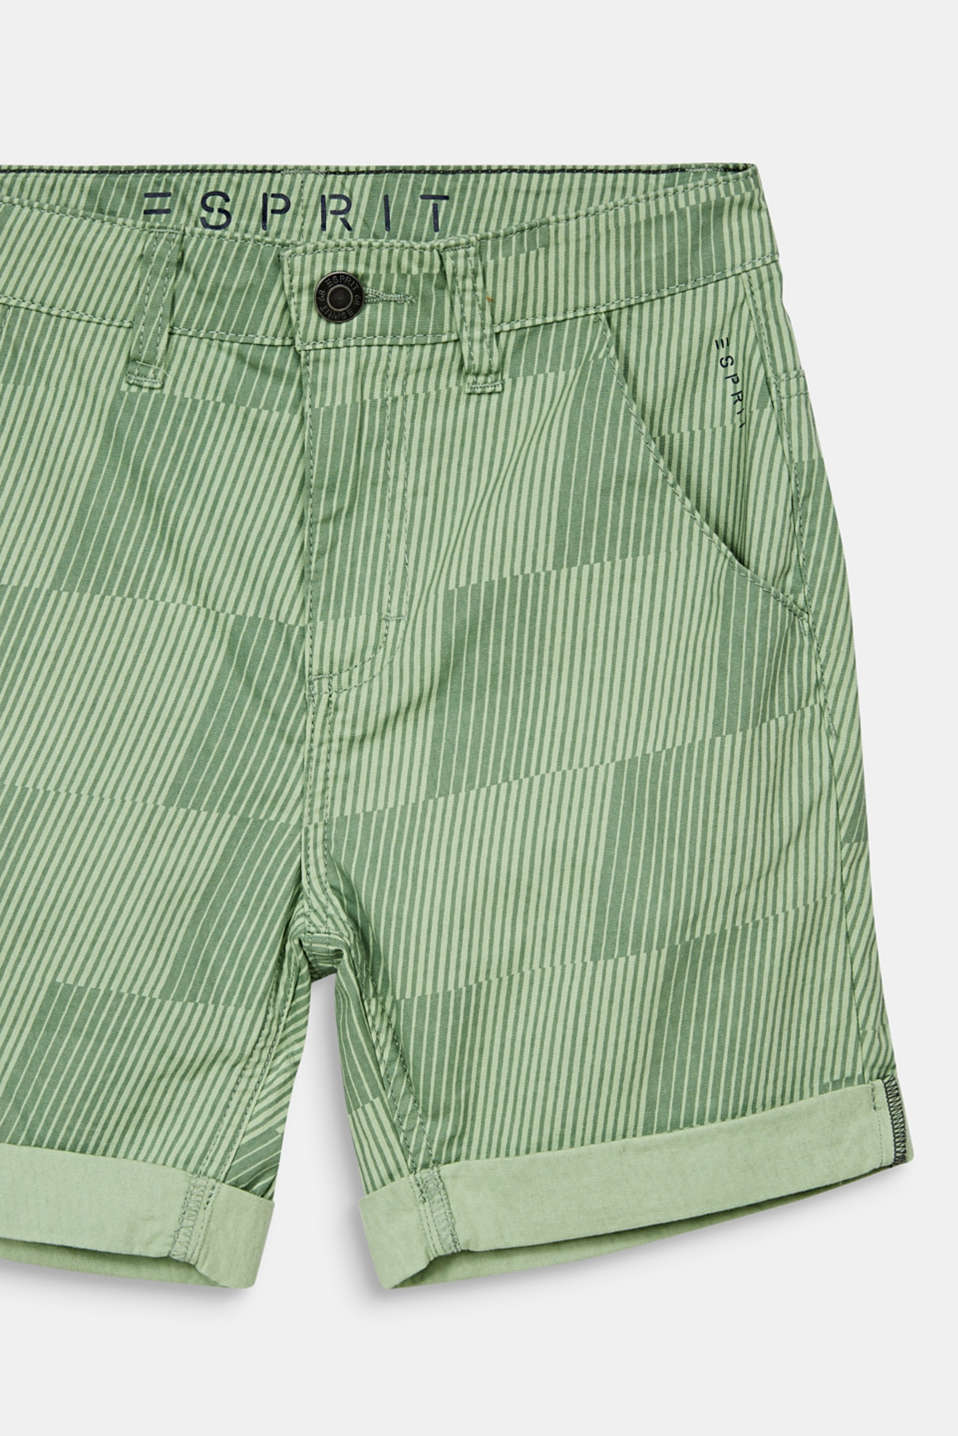 Shorts with a geometric print, 100% cotton, LCPASTEL GREEN, detail image number 2